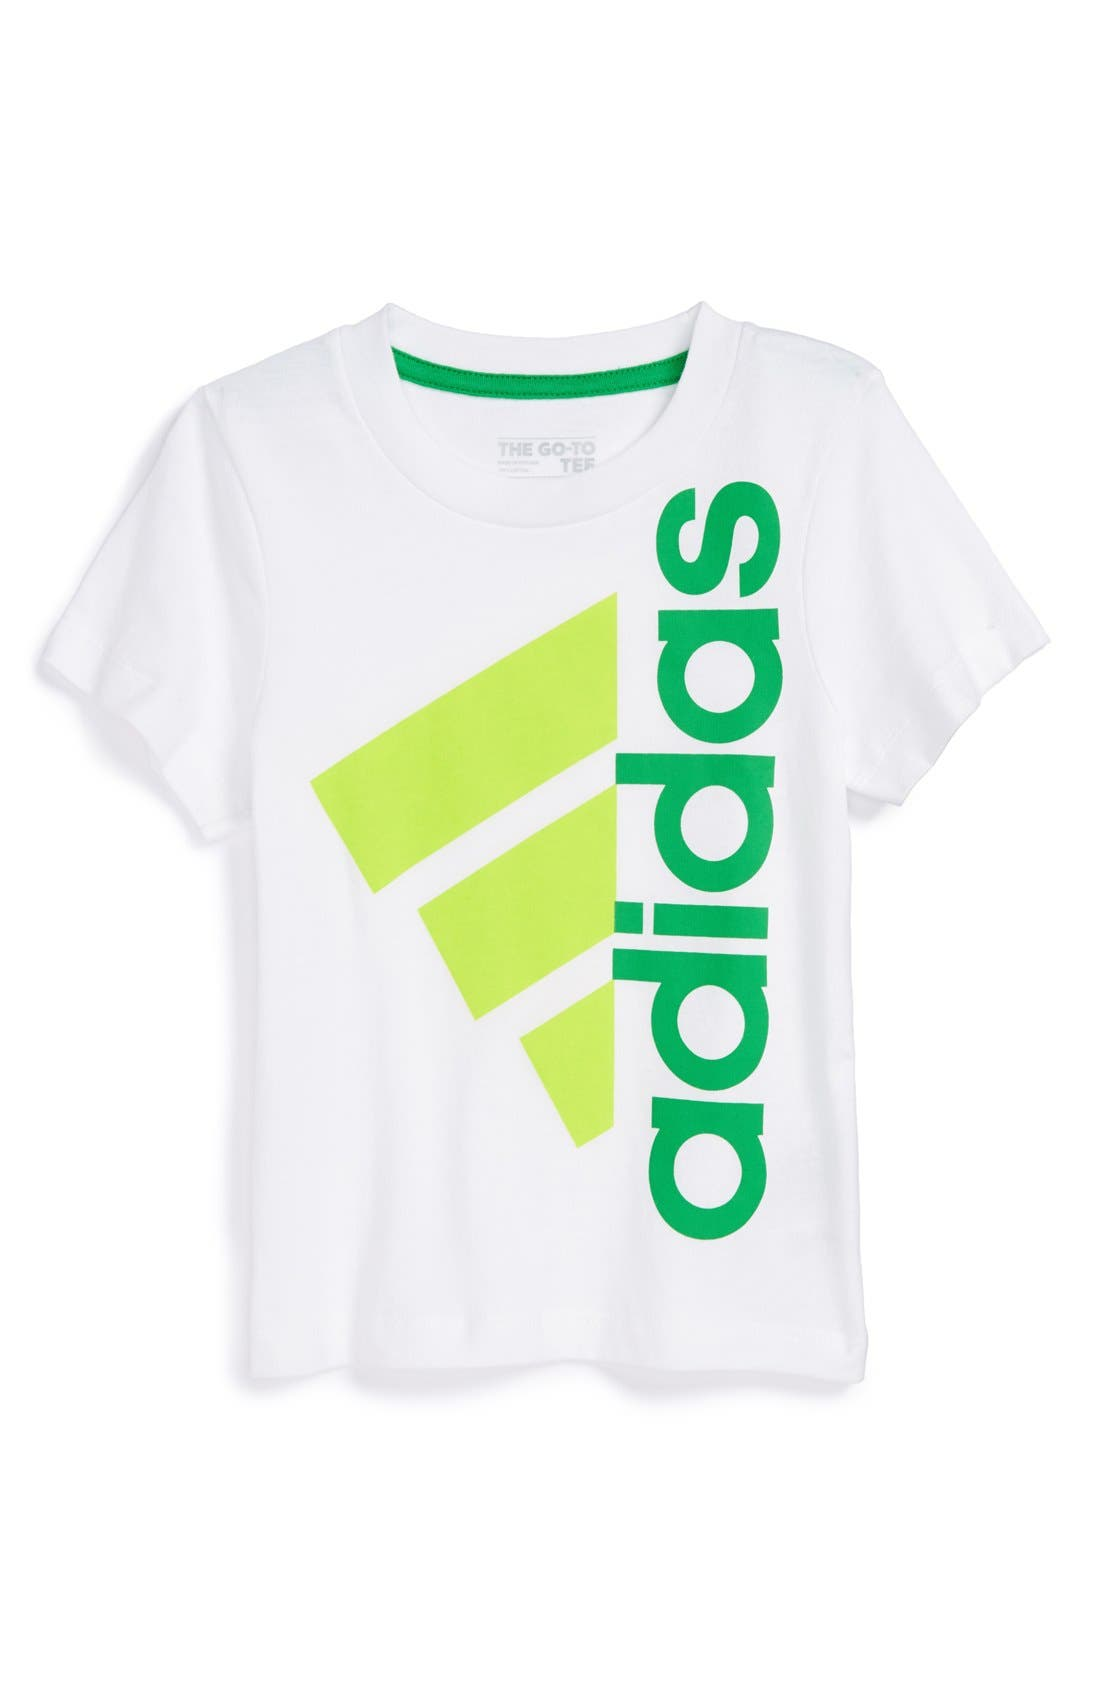 Alternate Image 1 Selected - adidas 'Bold Performance' T-Shirt (Toddler Boys)